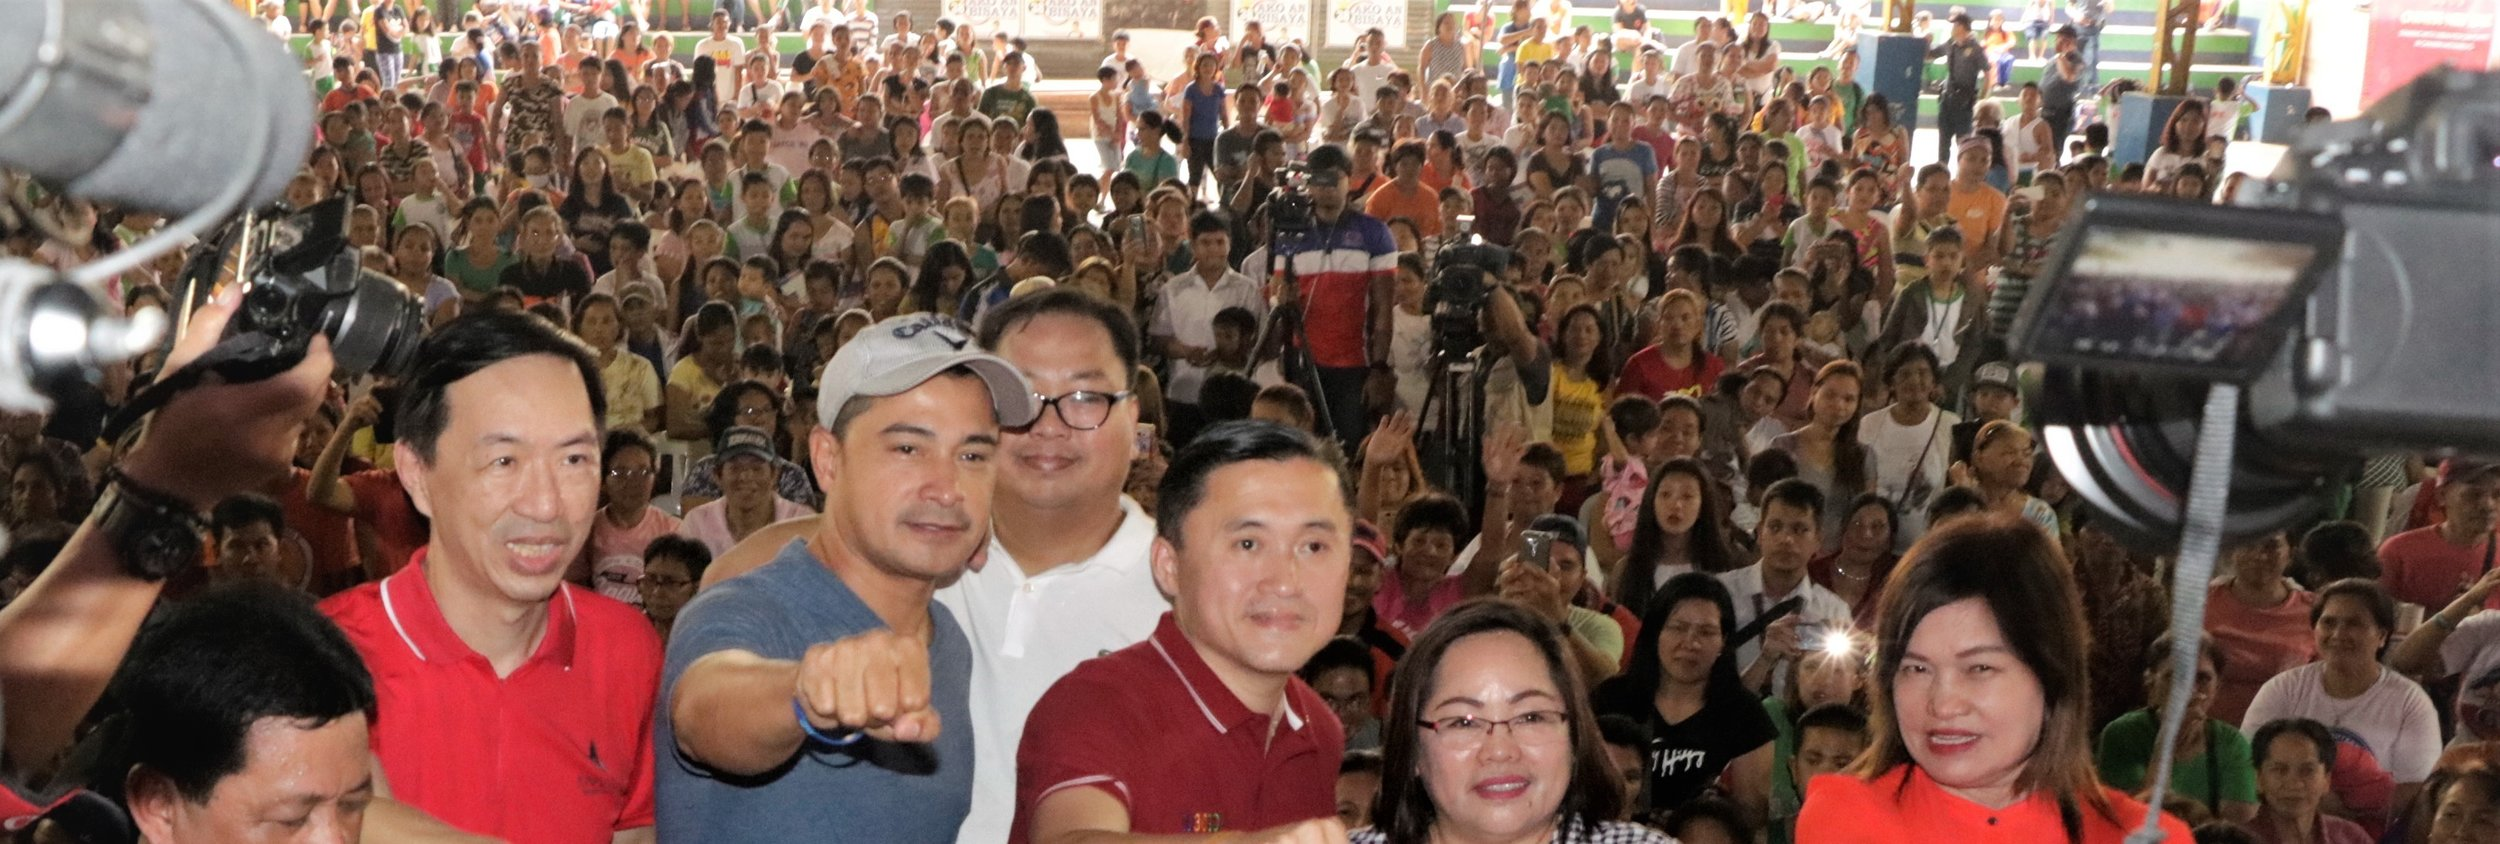 Anvil Business Club gave 10,000 tikoy in Camarin D Elementary School, Caloocan with guests Bong Go, Cesar Montano. Anvil chairman Wilson Lee Flores, PCUP chairman Alvin Feliciano. Also visited was Barracks area of Caloocan